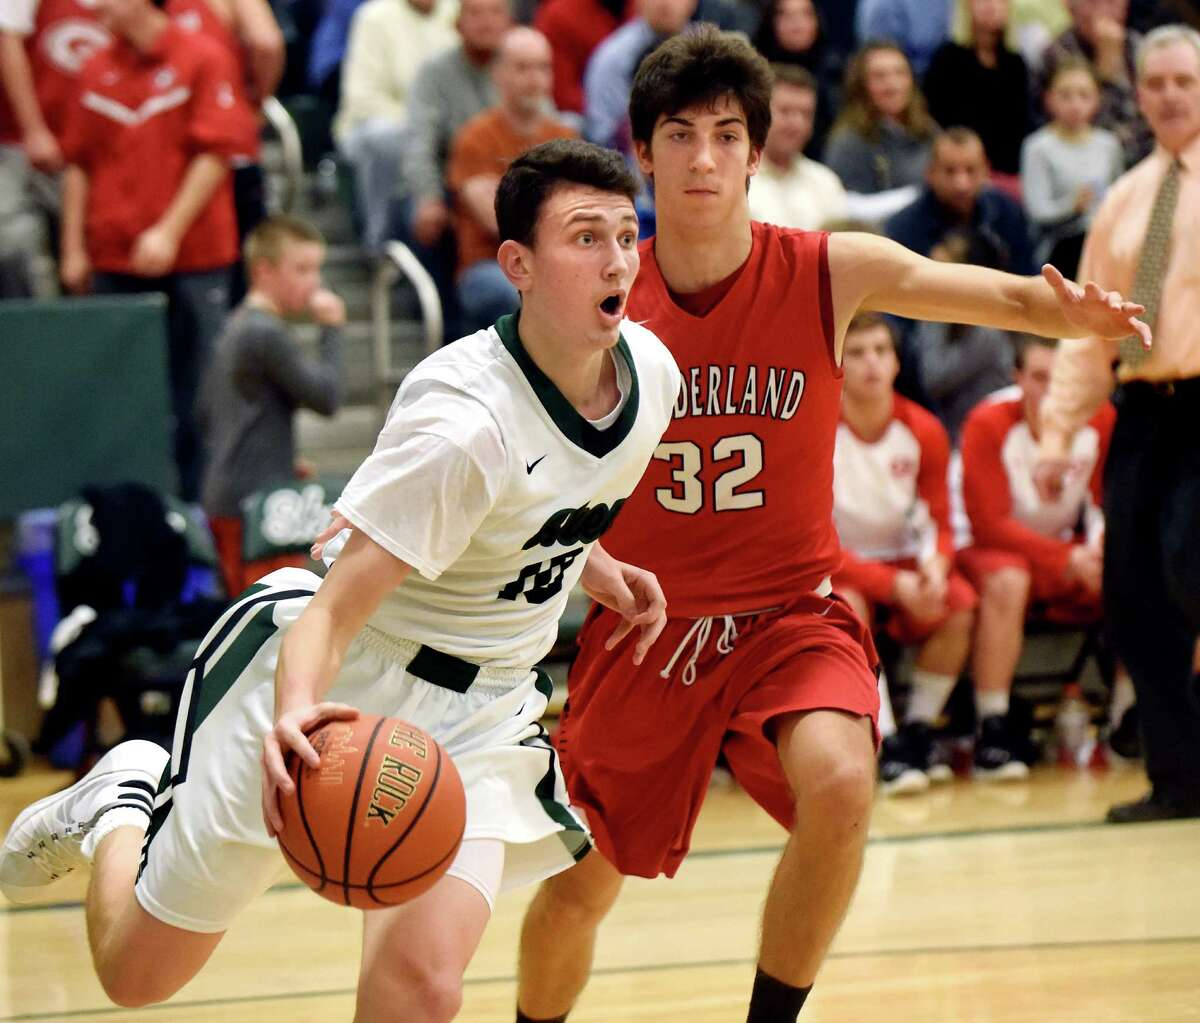 Shen's Luke Hicks, left, controls the ball as Guilderland's George Marinopoulos defends during their basketball game on Friday, Dec. 11, 2015, at Shenendehowa High in Clifton Park, N.Y. (Cindy Schultz / Times Union)